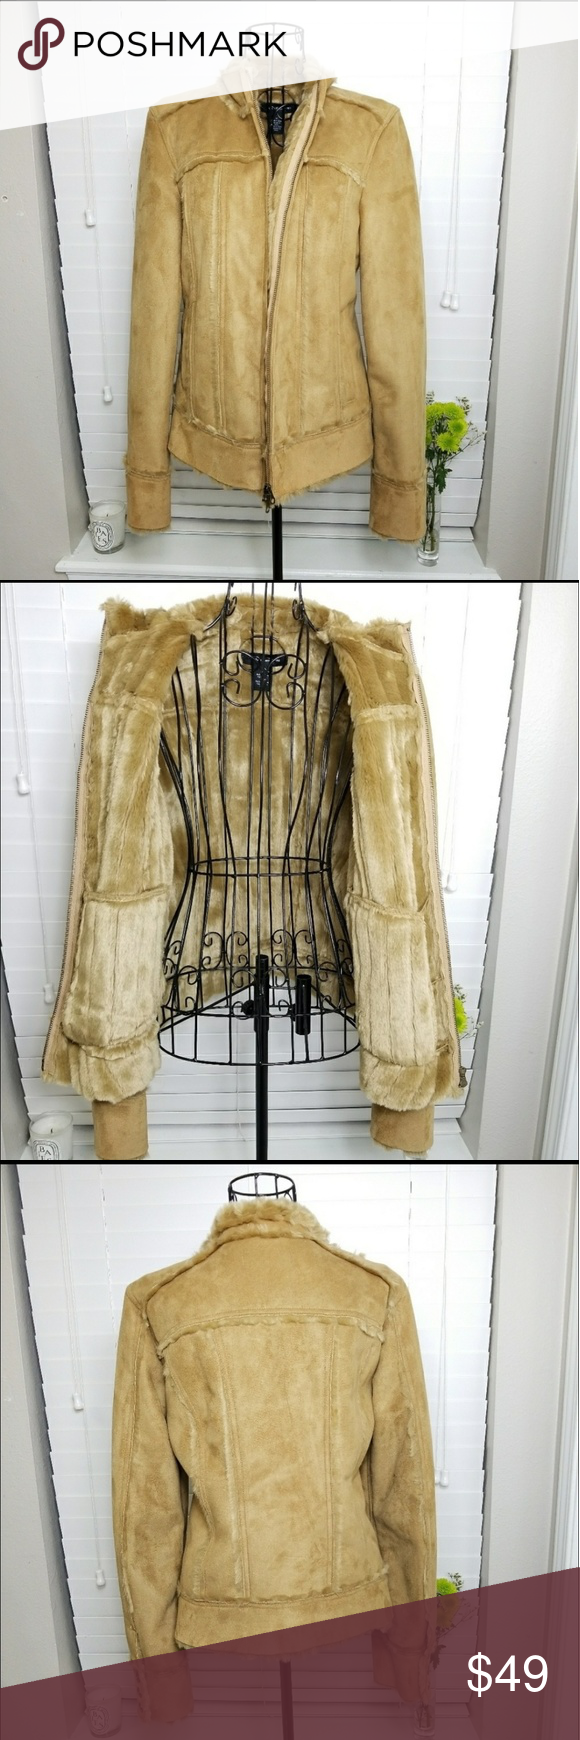 Calvin Klein Vegan Leather Faux Fur Lined Jacket Line